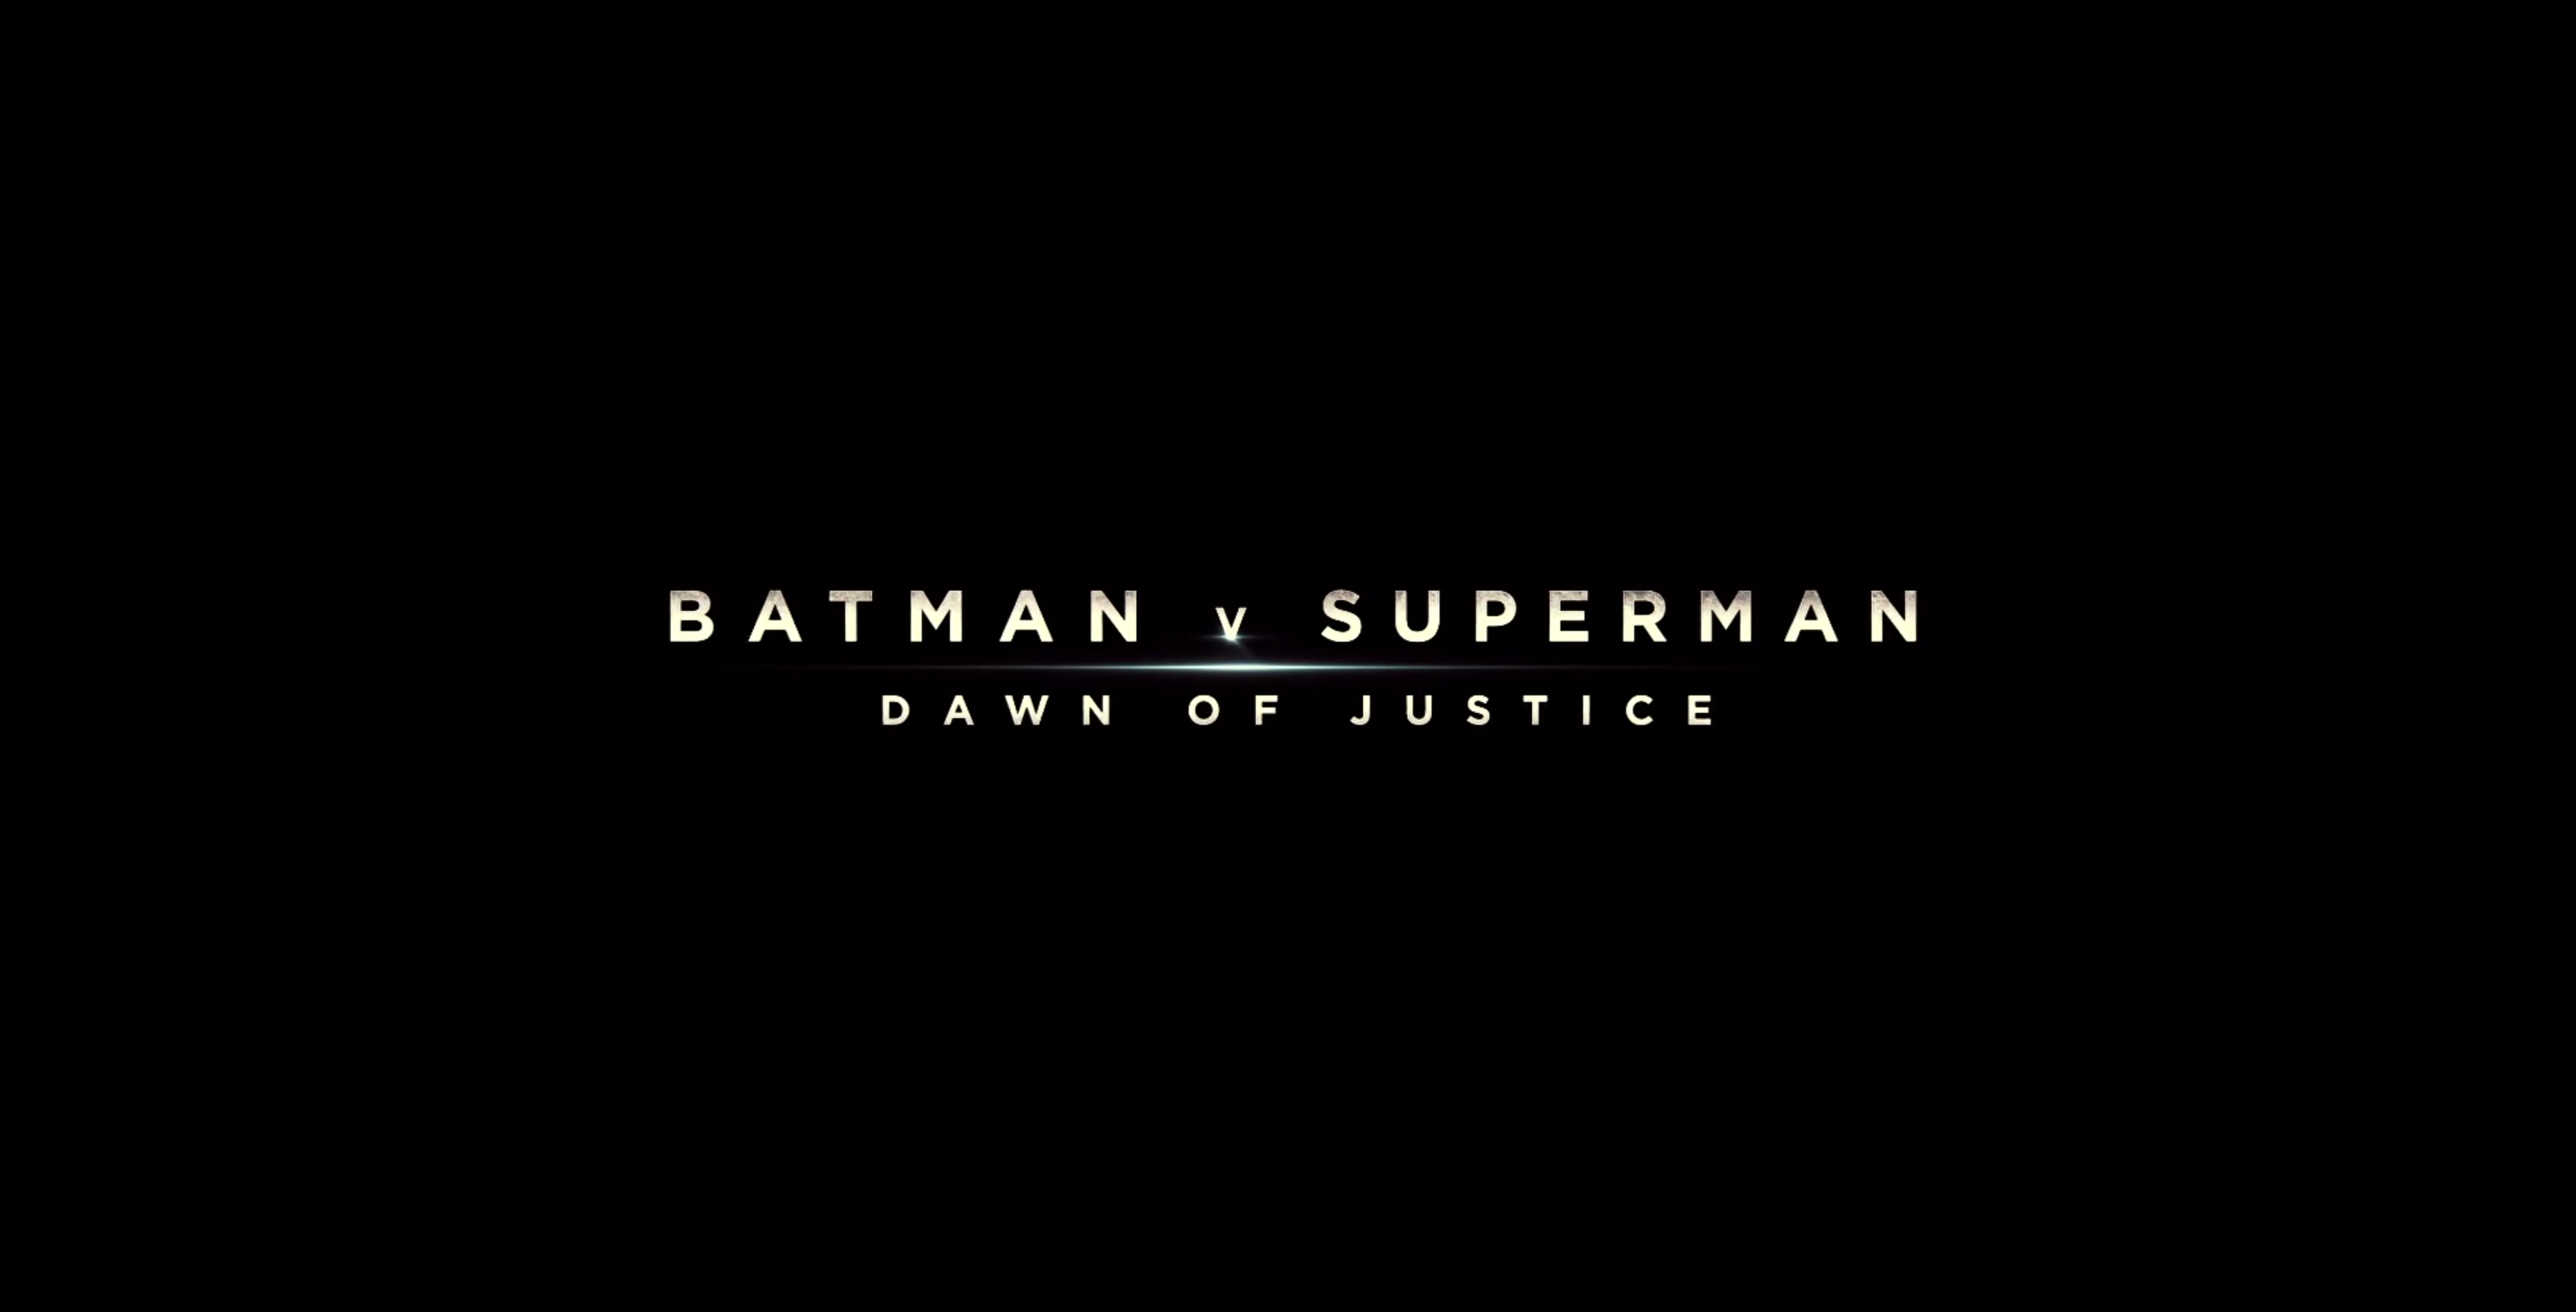 Batman_v_Superman-Dawn_of_Justice-Movie-HD-Wallpapers-10